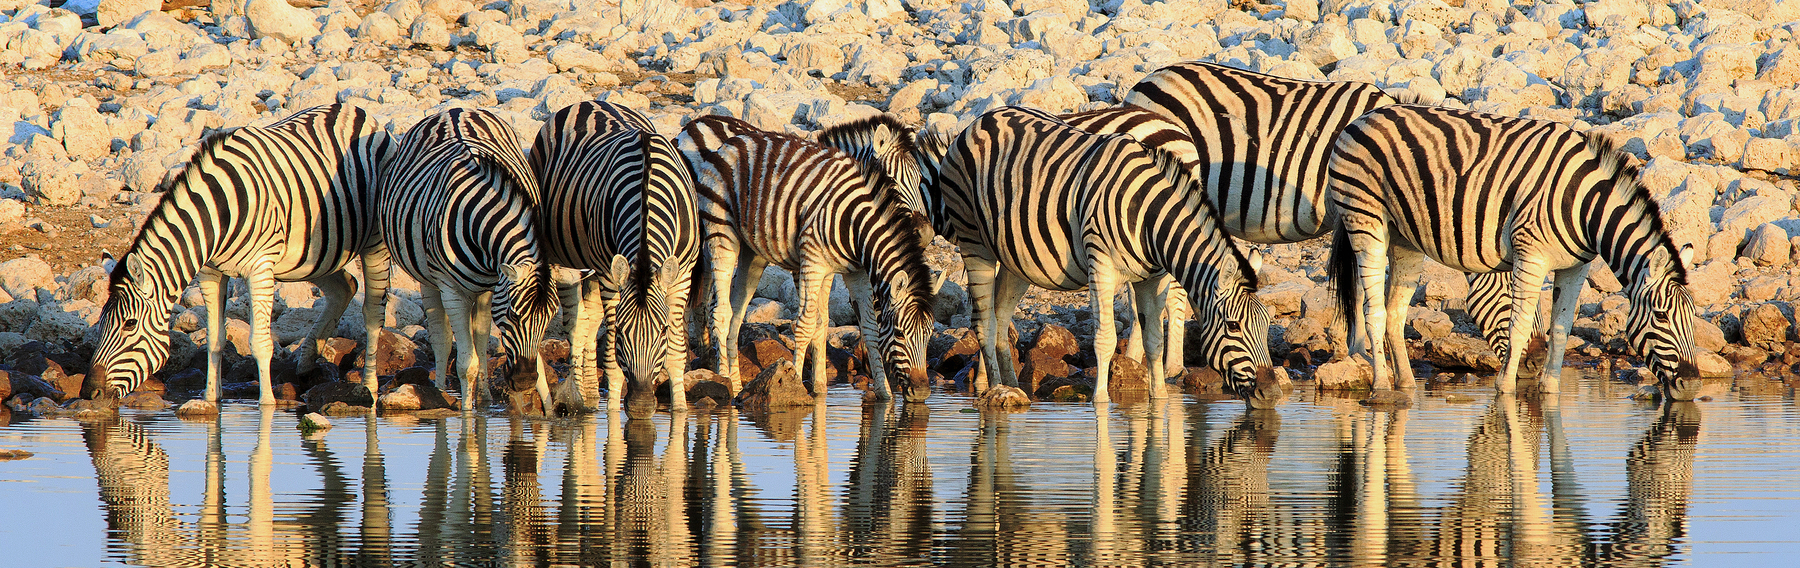 African watering hole